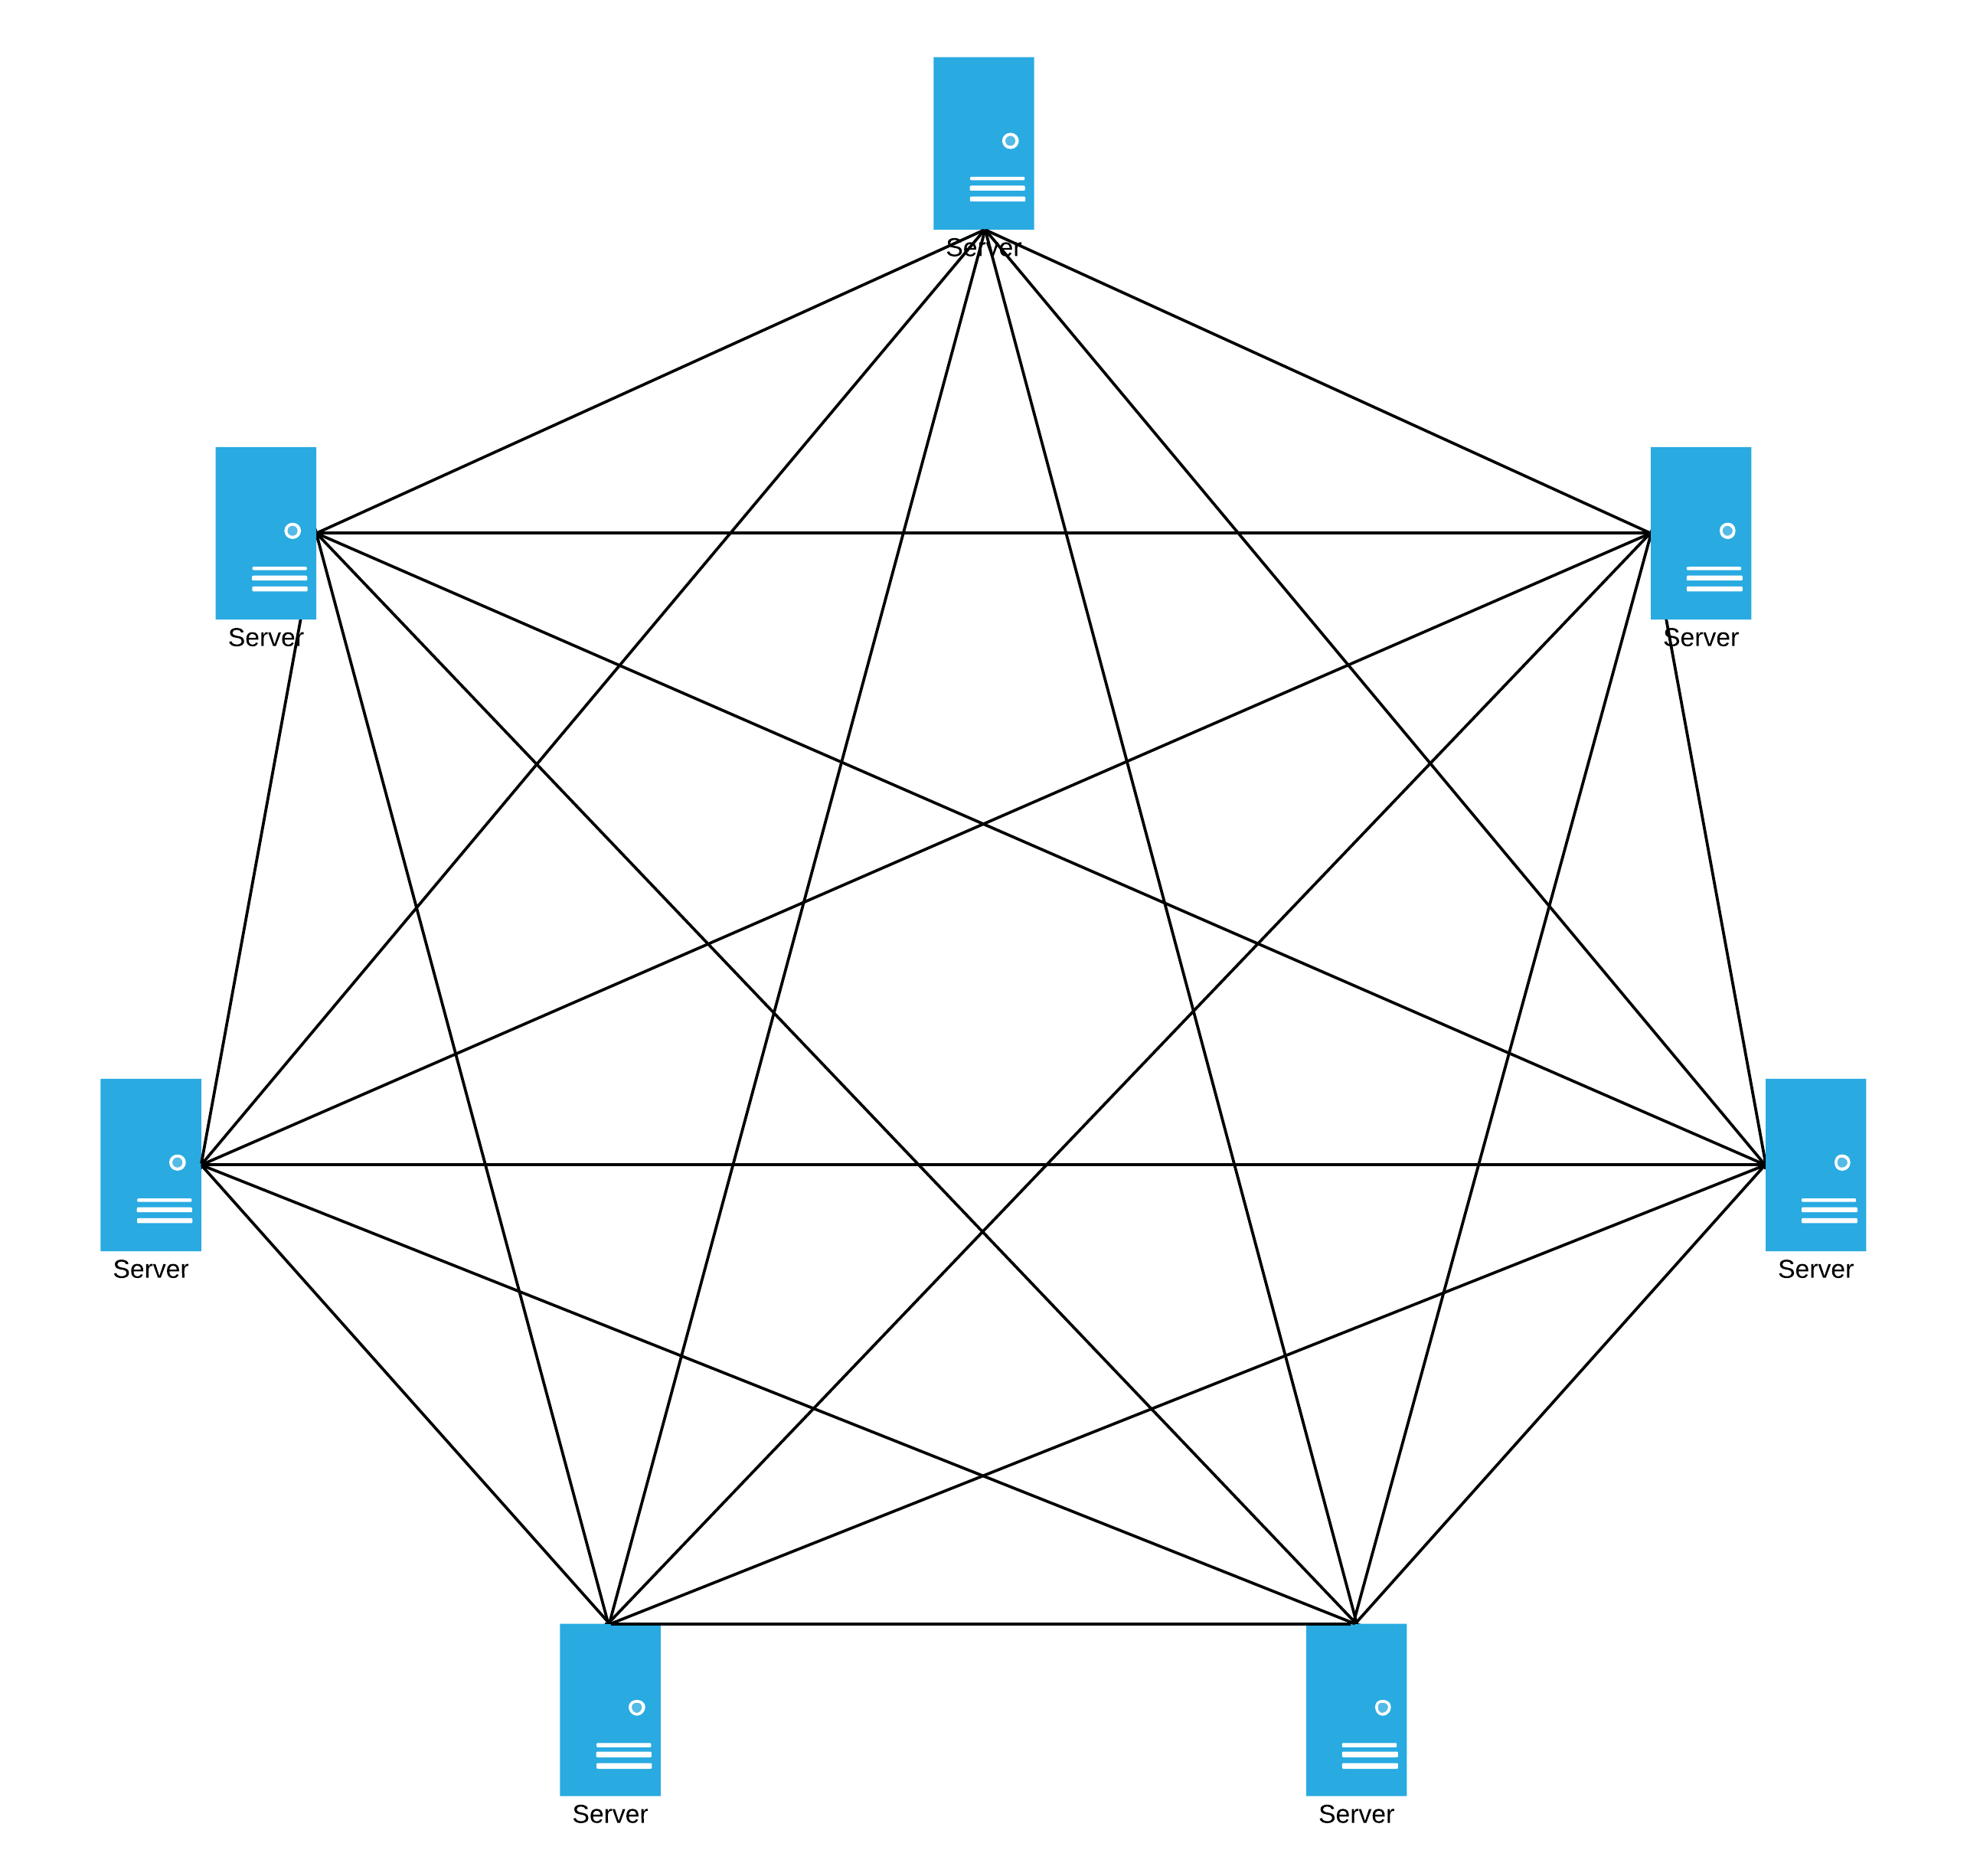 Our mesh network